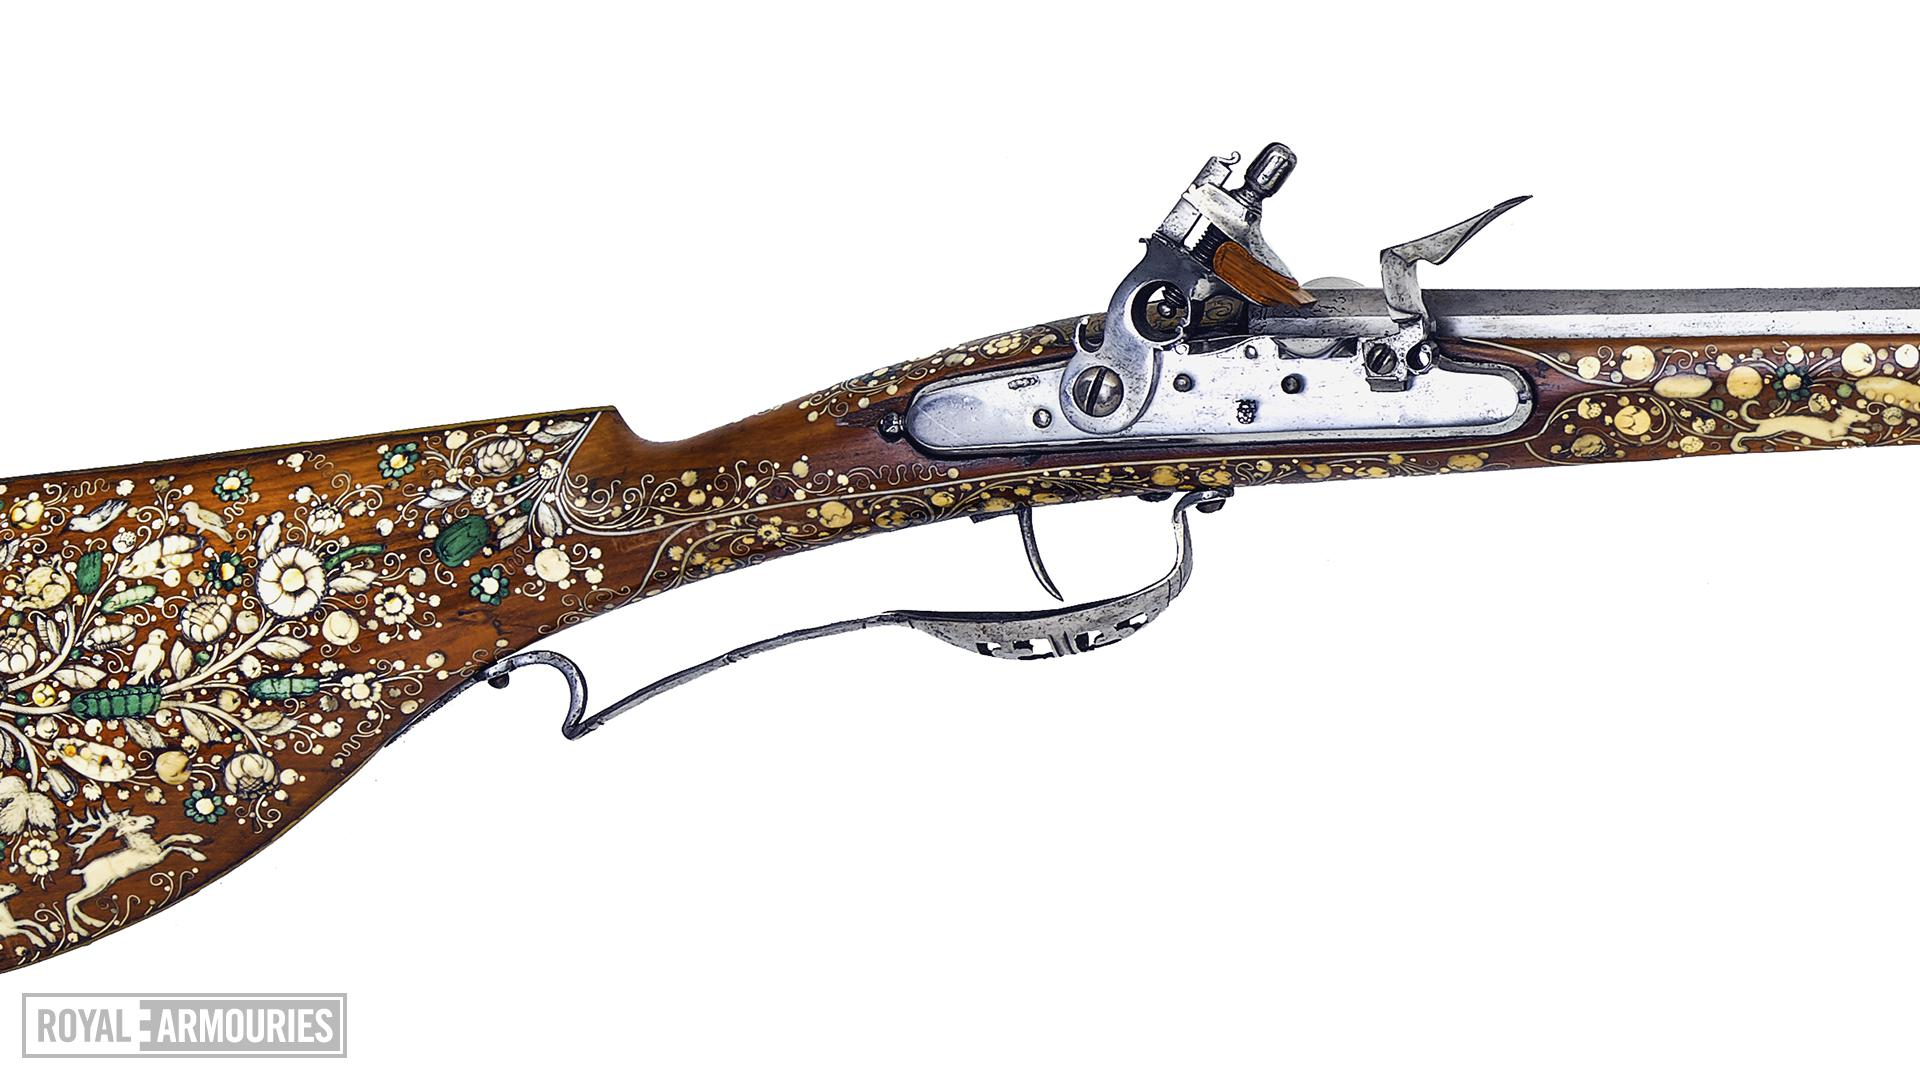 Flintlock sporting gun - by Jean Conrad Tornier Lock by Franz Kruter, Solothurn, Switzerland